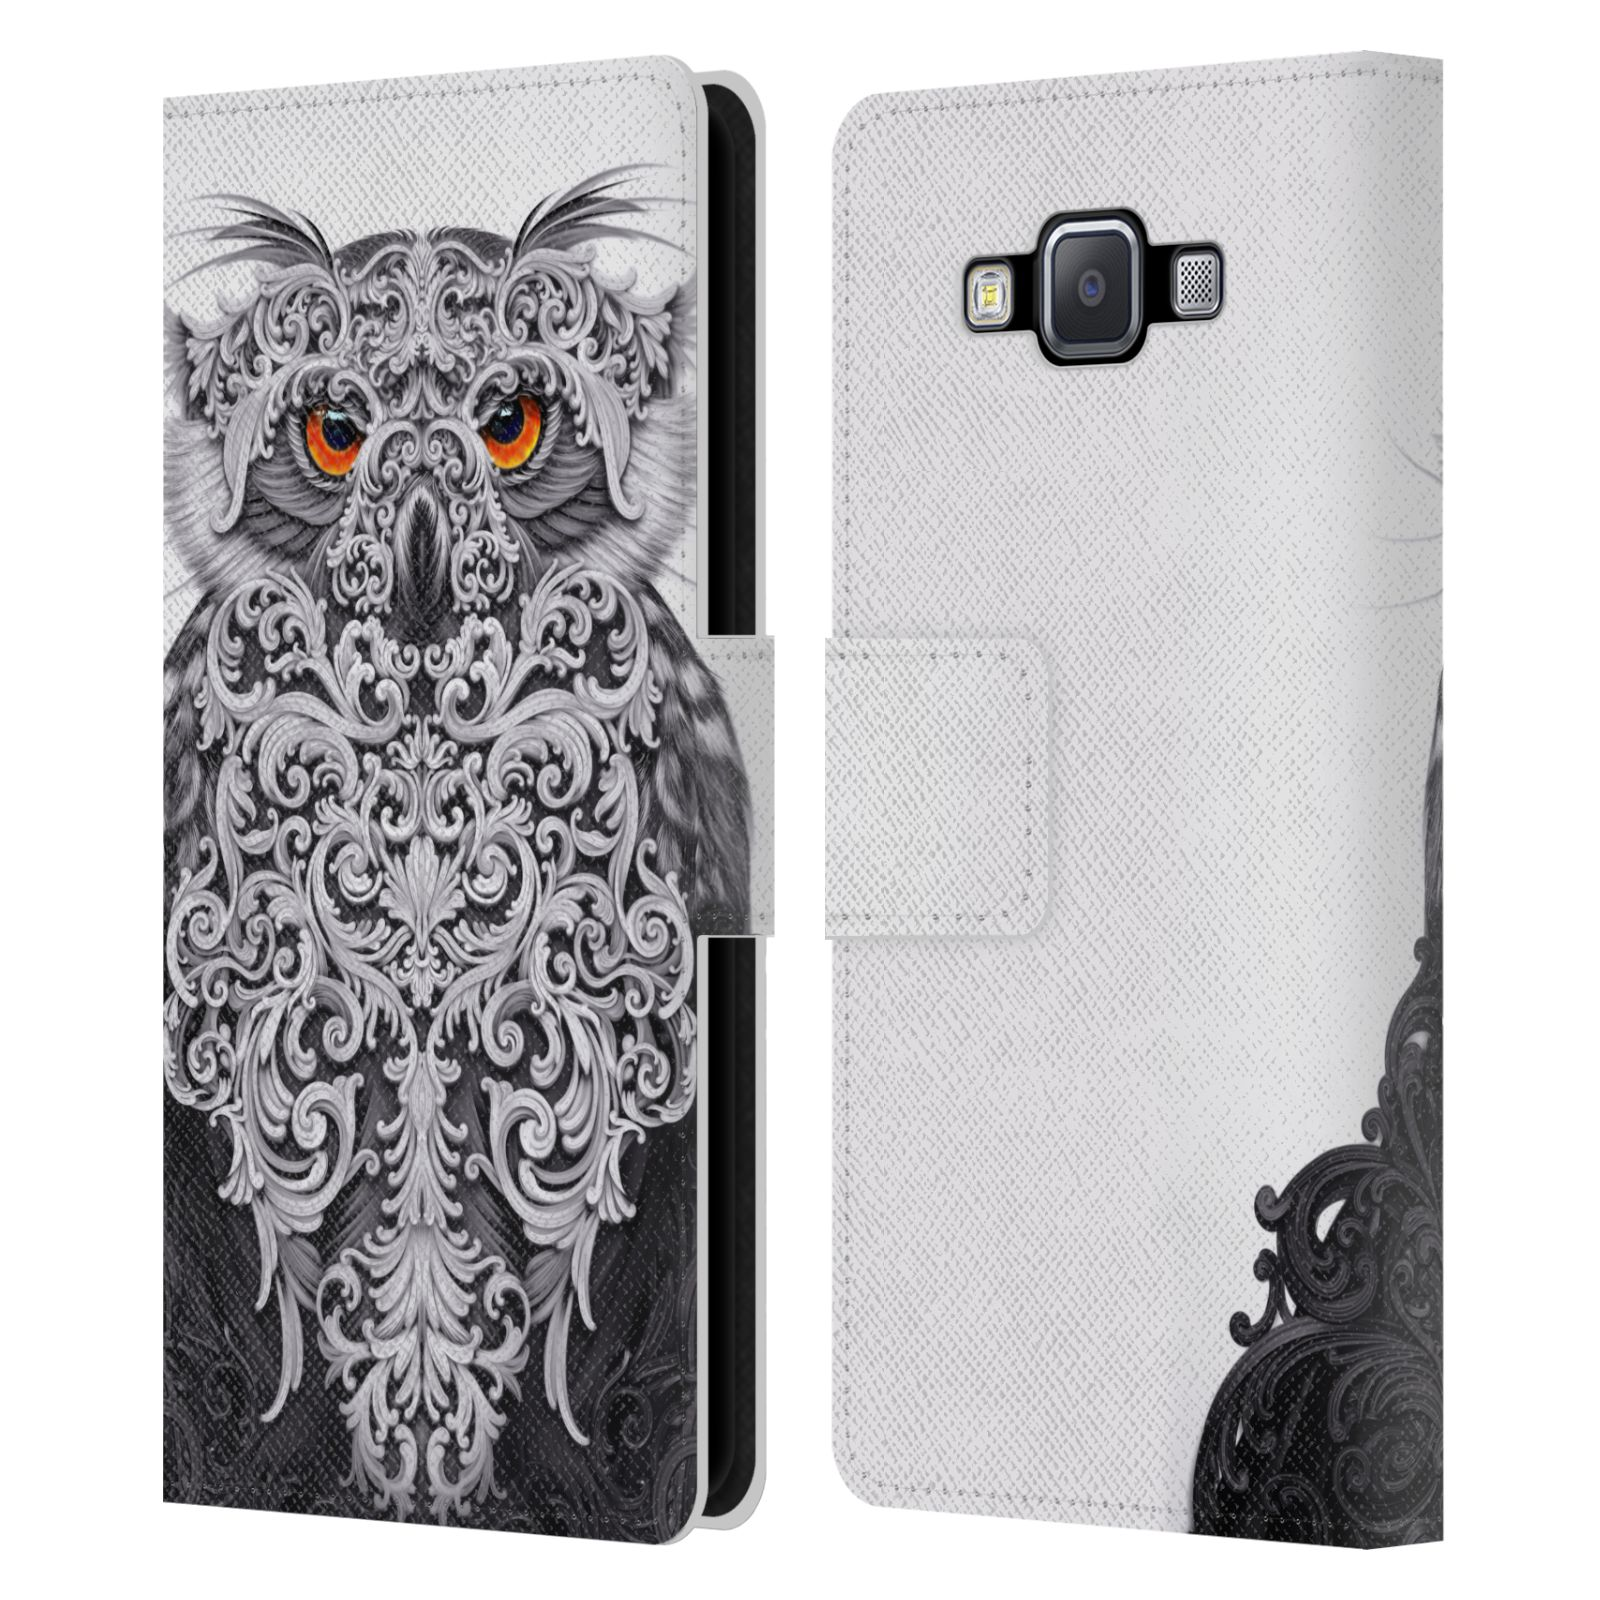 OFFICIAL-GIULIO-ROSSI-ANIMAL-COLLECTION-LEATHER-BOOK-CASE-FOR-SAMSUNG-PHONES-2